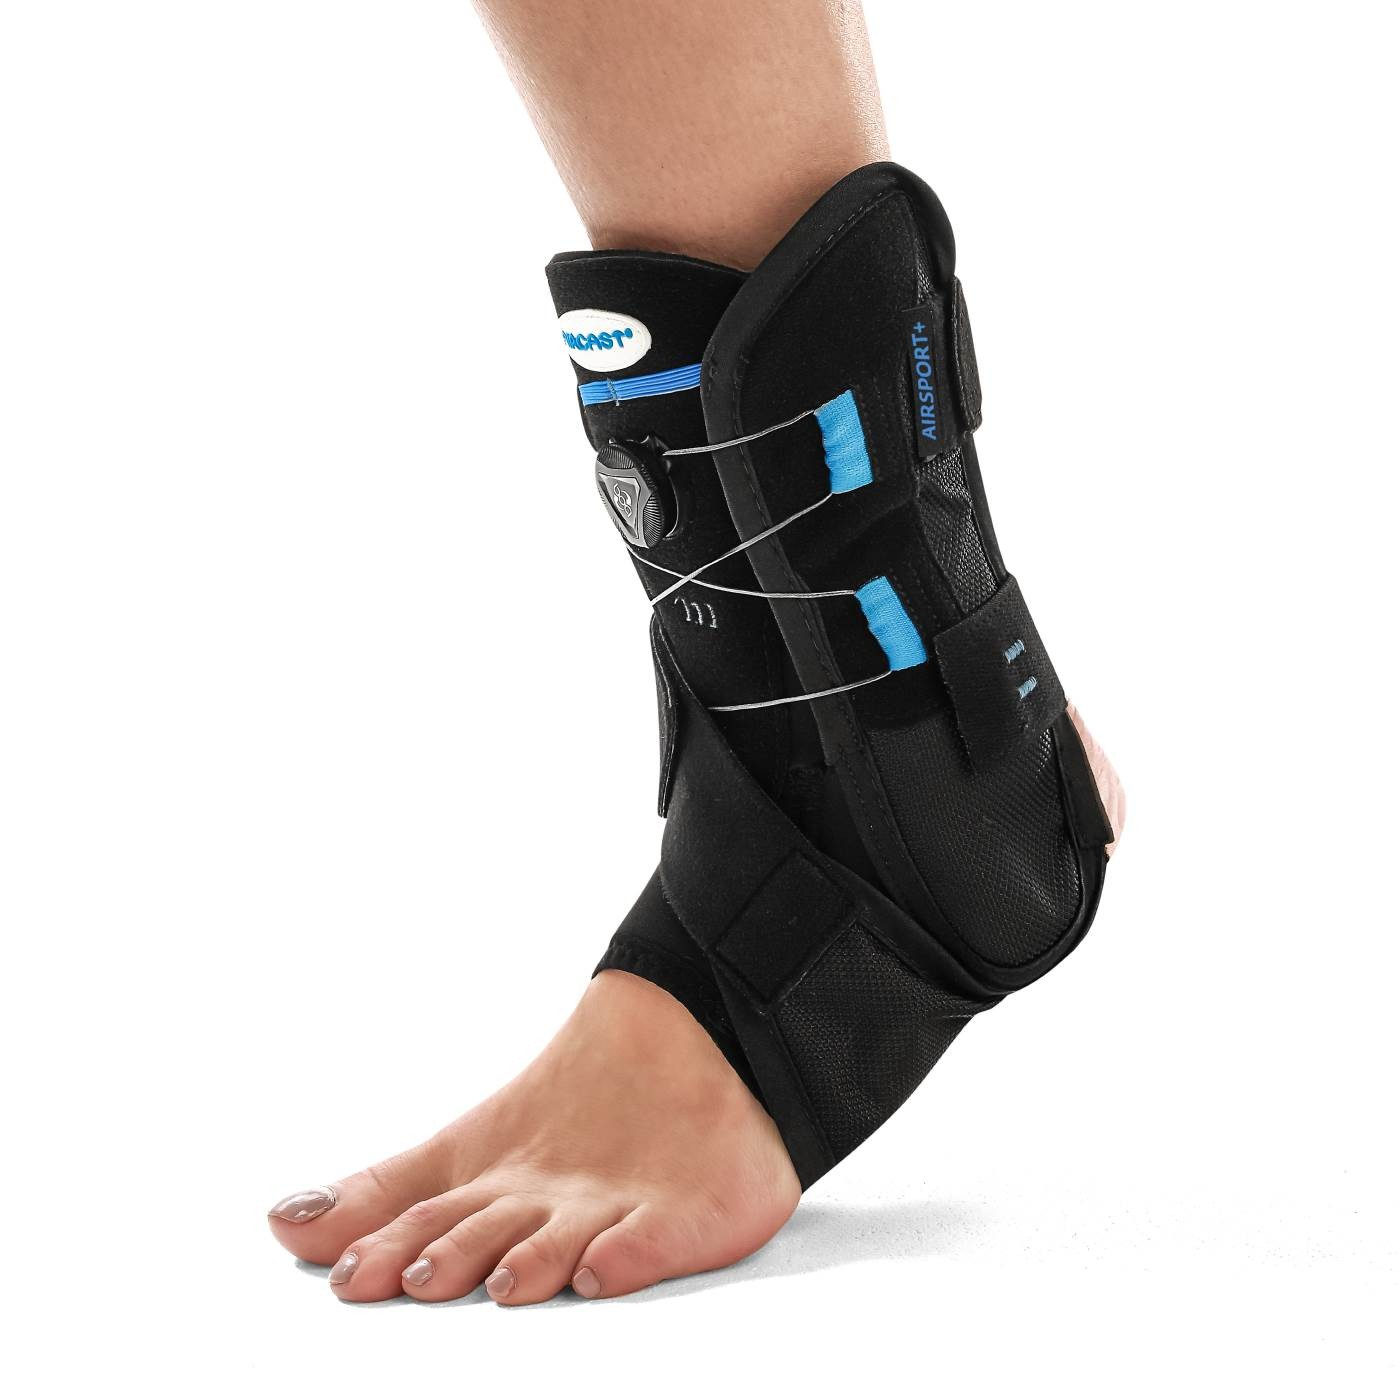 Aircast Airsport+ Ankle - Second Product